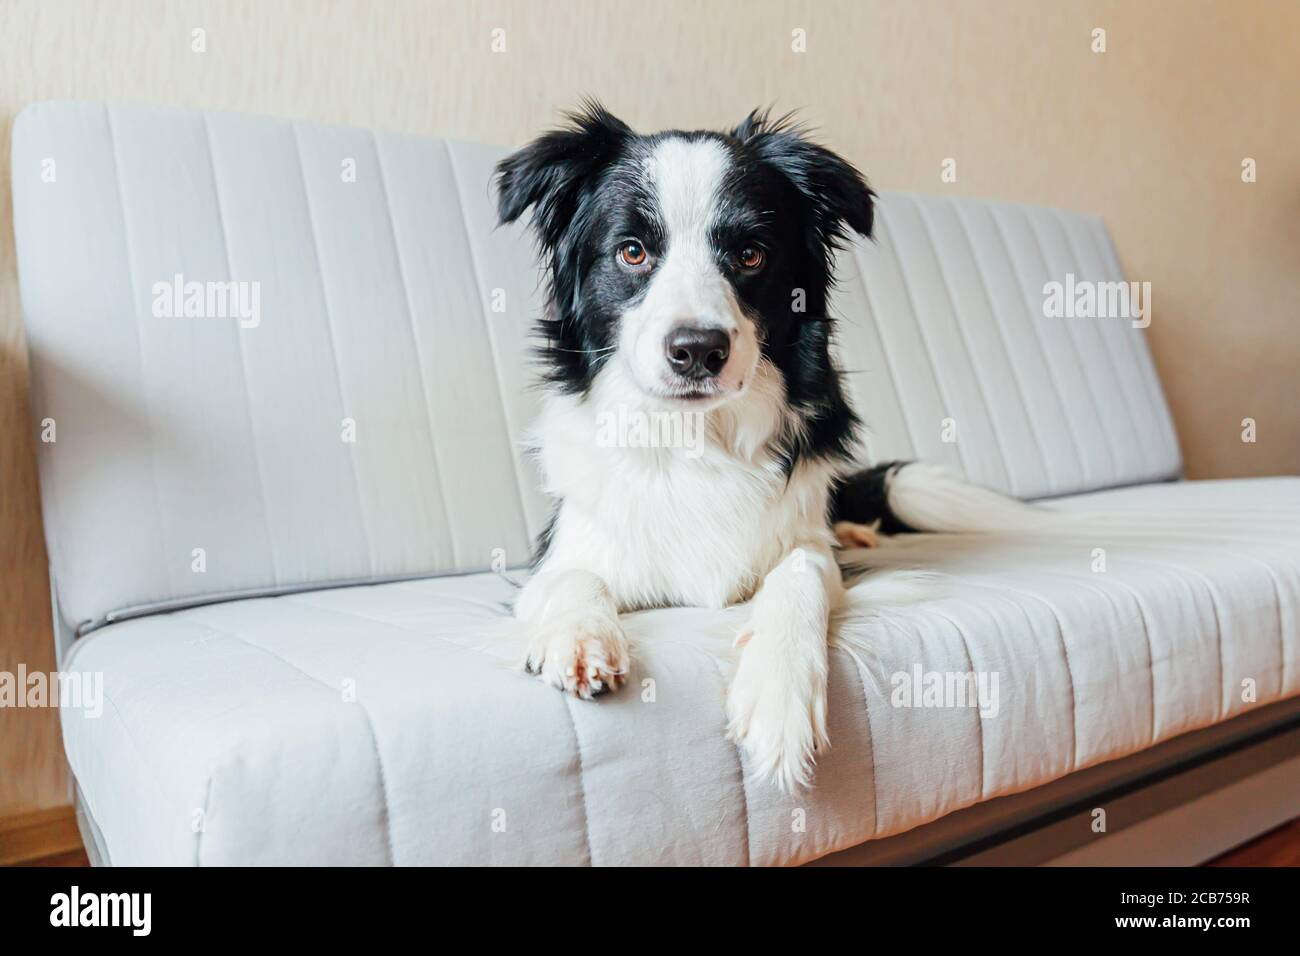 Funny Portrait Of Cute Smiling Puppy Dog Border Collie On Couch Indoors New Lovely Member Of Family Little Dog At Home Gazing And Waiting Pet Care And Animals Concept Stock Photo